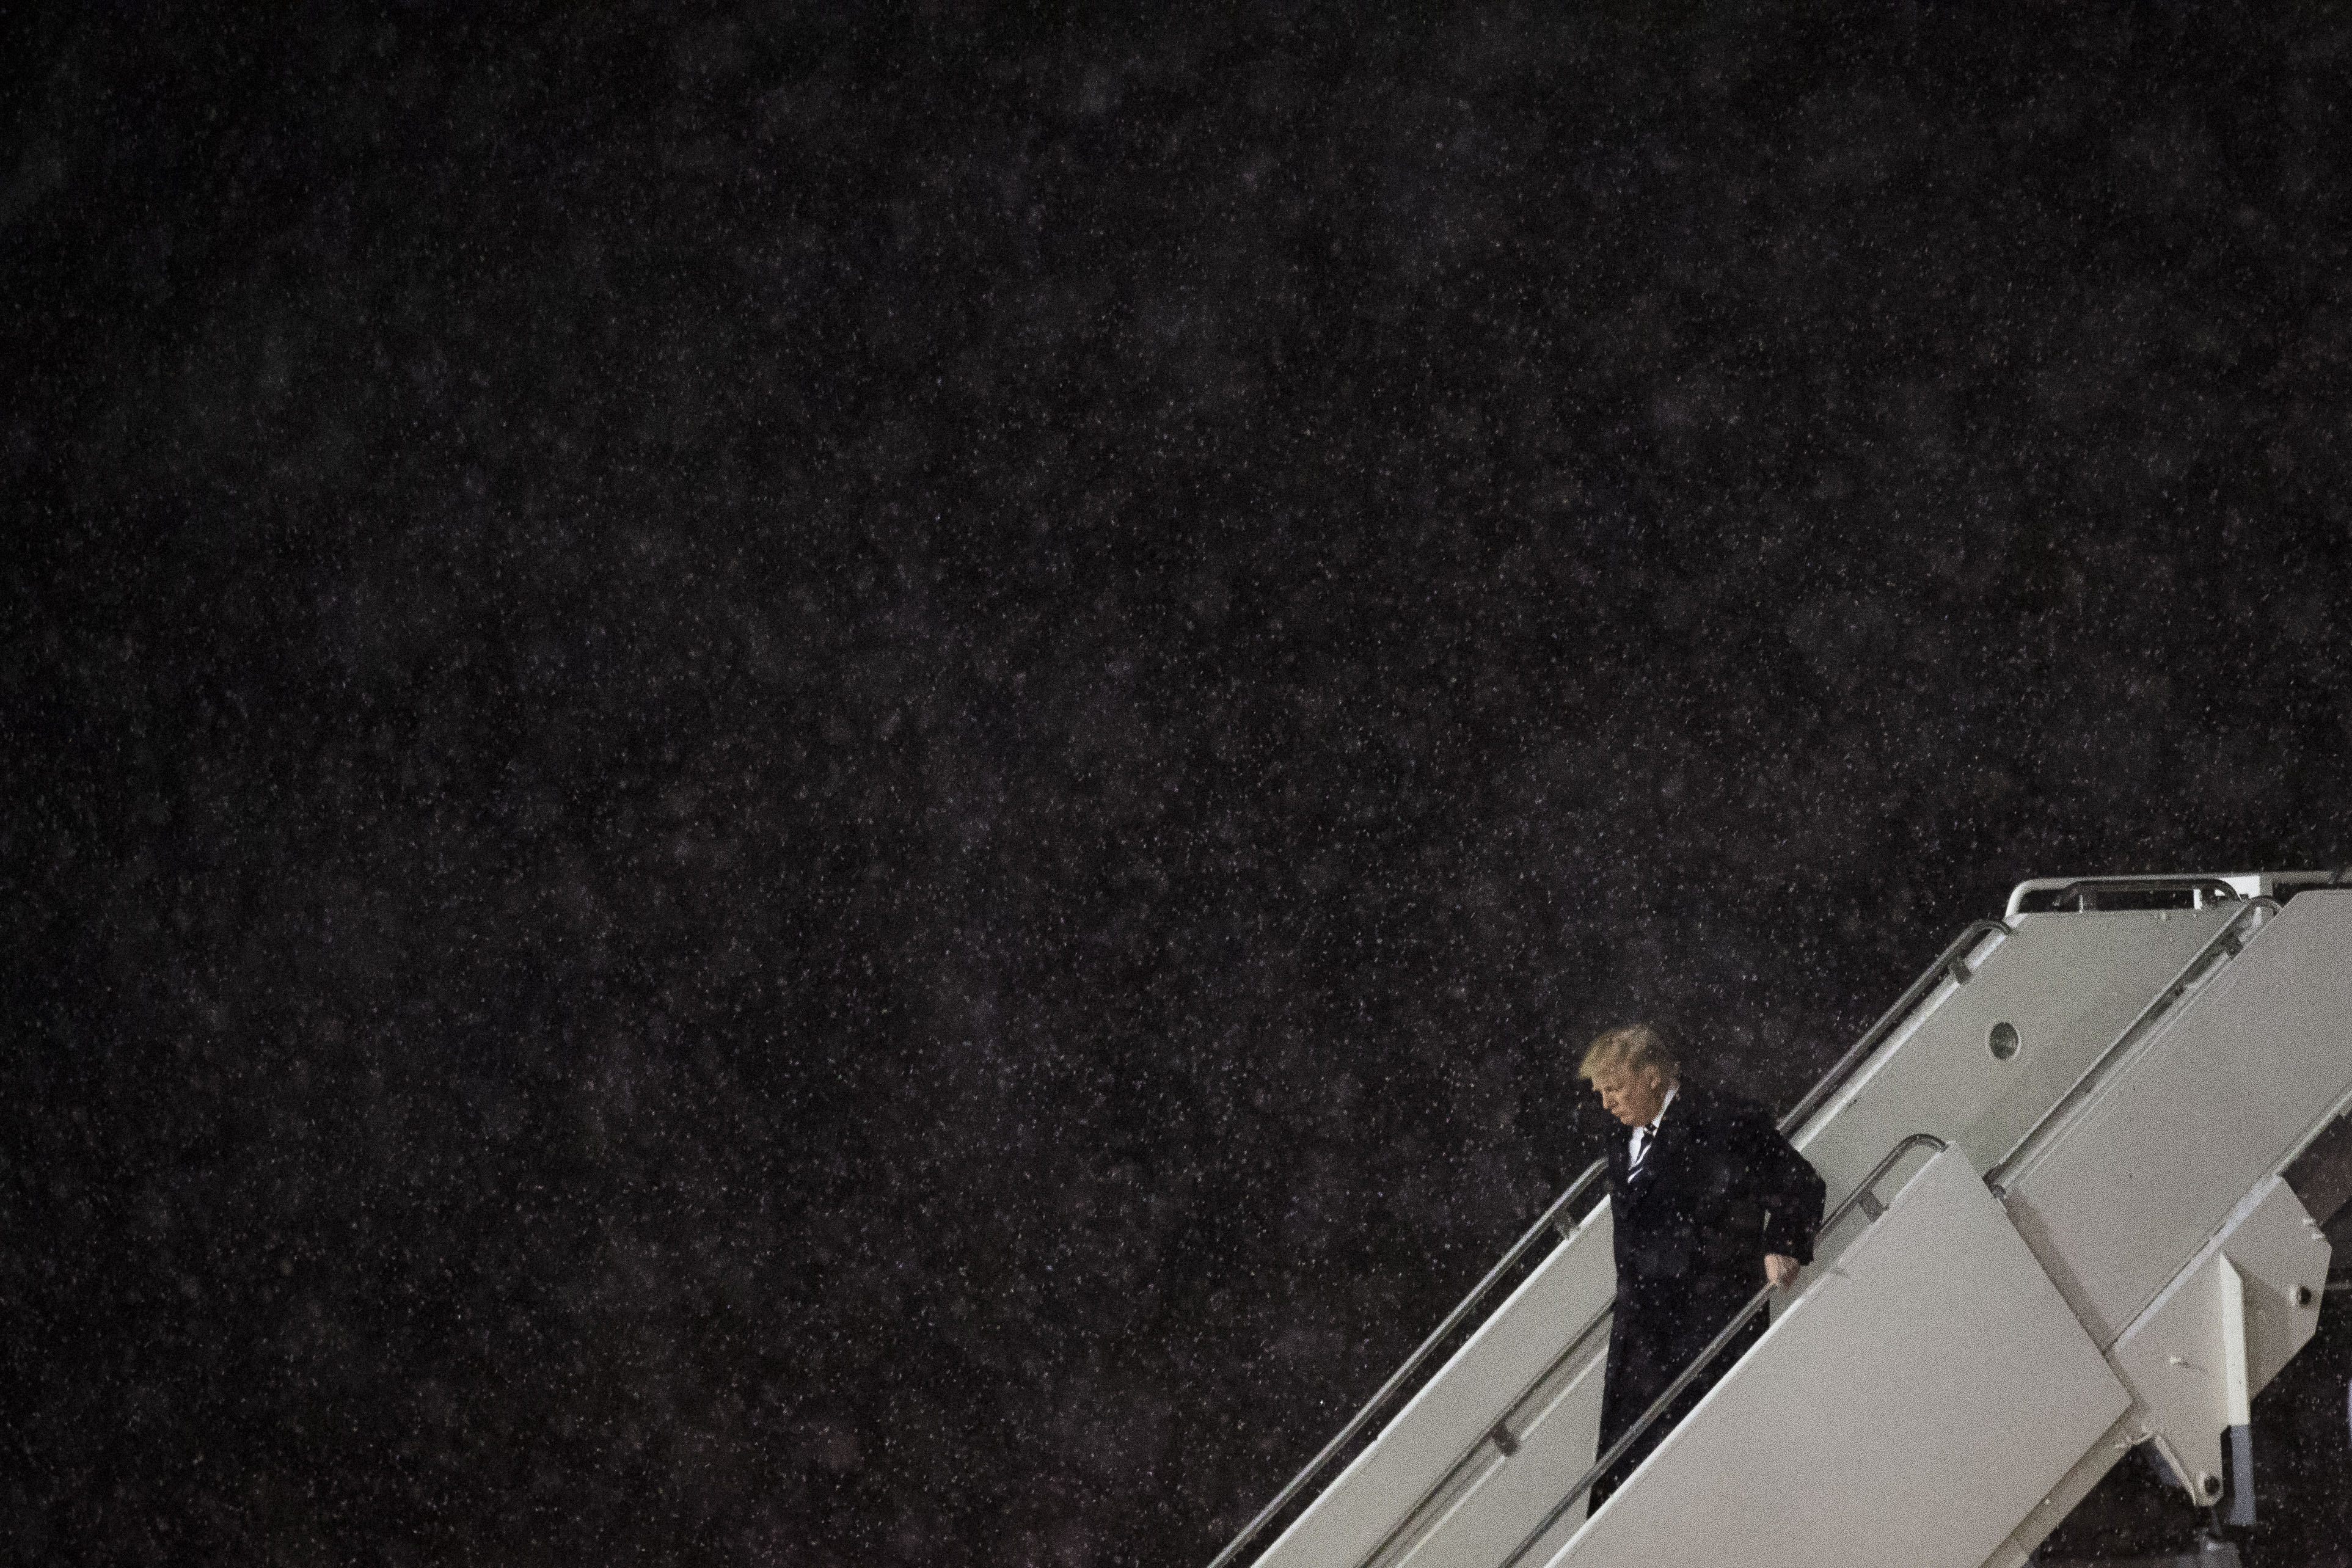 Donald Trump departs his plane at Gerald R. Ford International Airport, in Grand Rapids, MI, on Dec. 9, 2016.